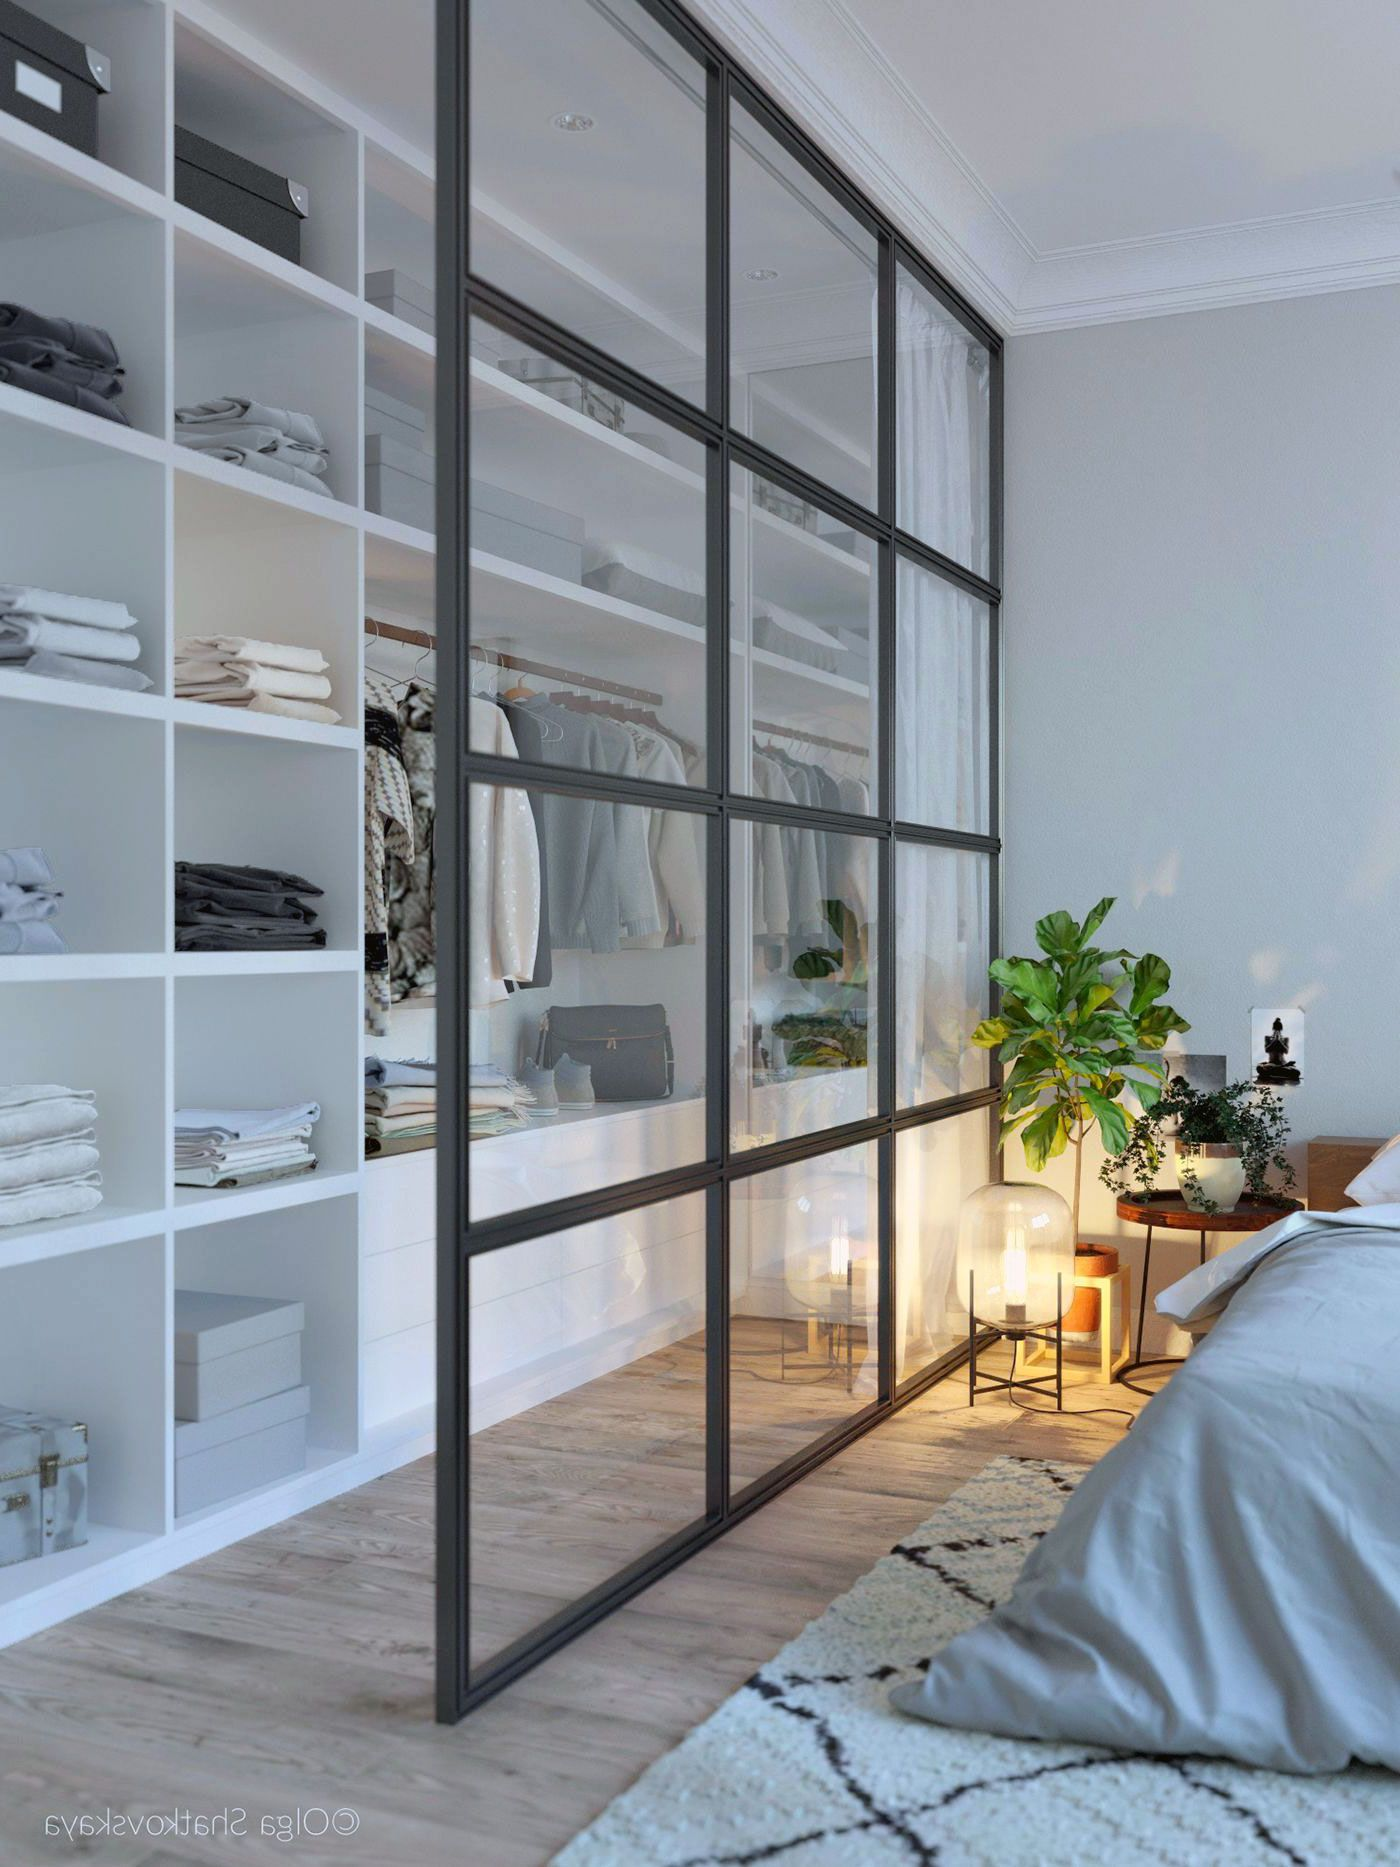 26 Awesome Scandinavian Bedroom Wardrobe Ideas - Outoflineartstudio